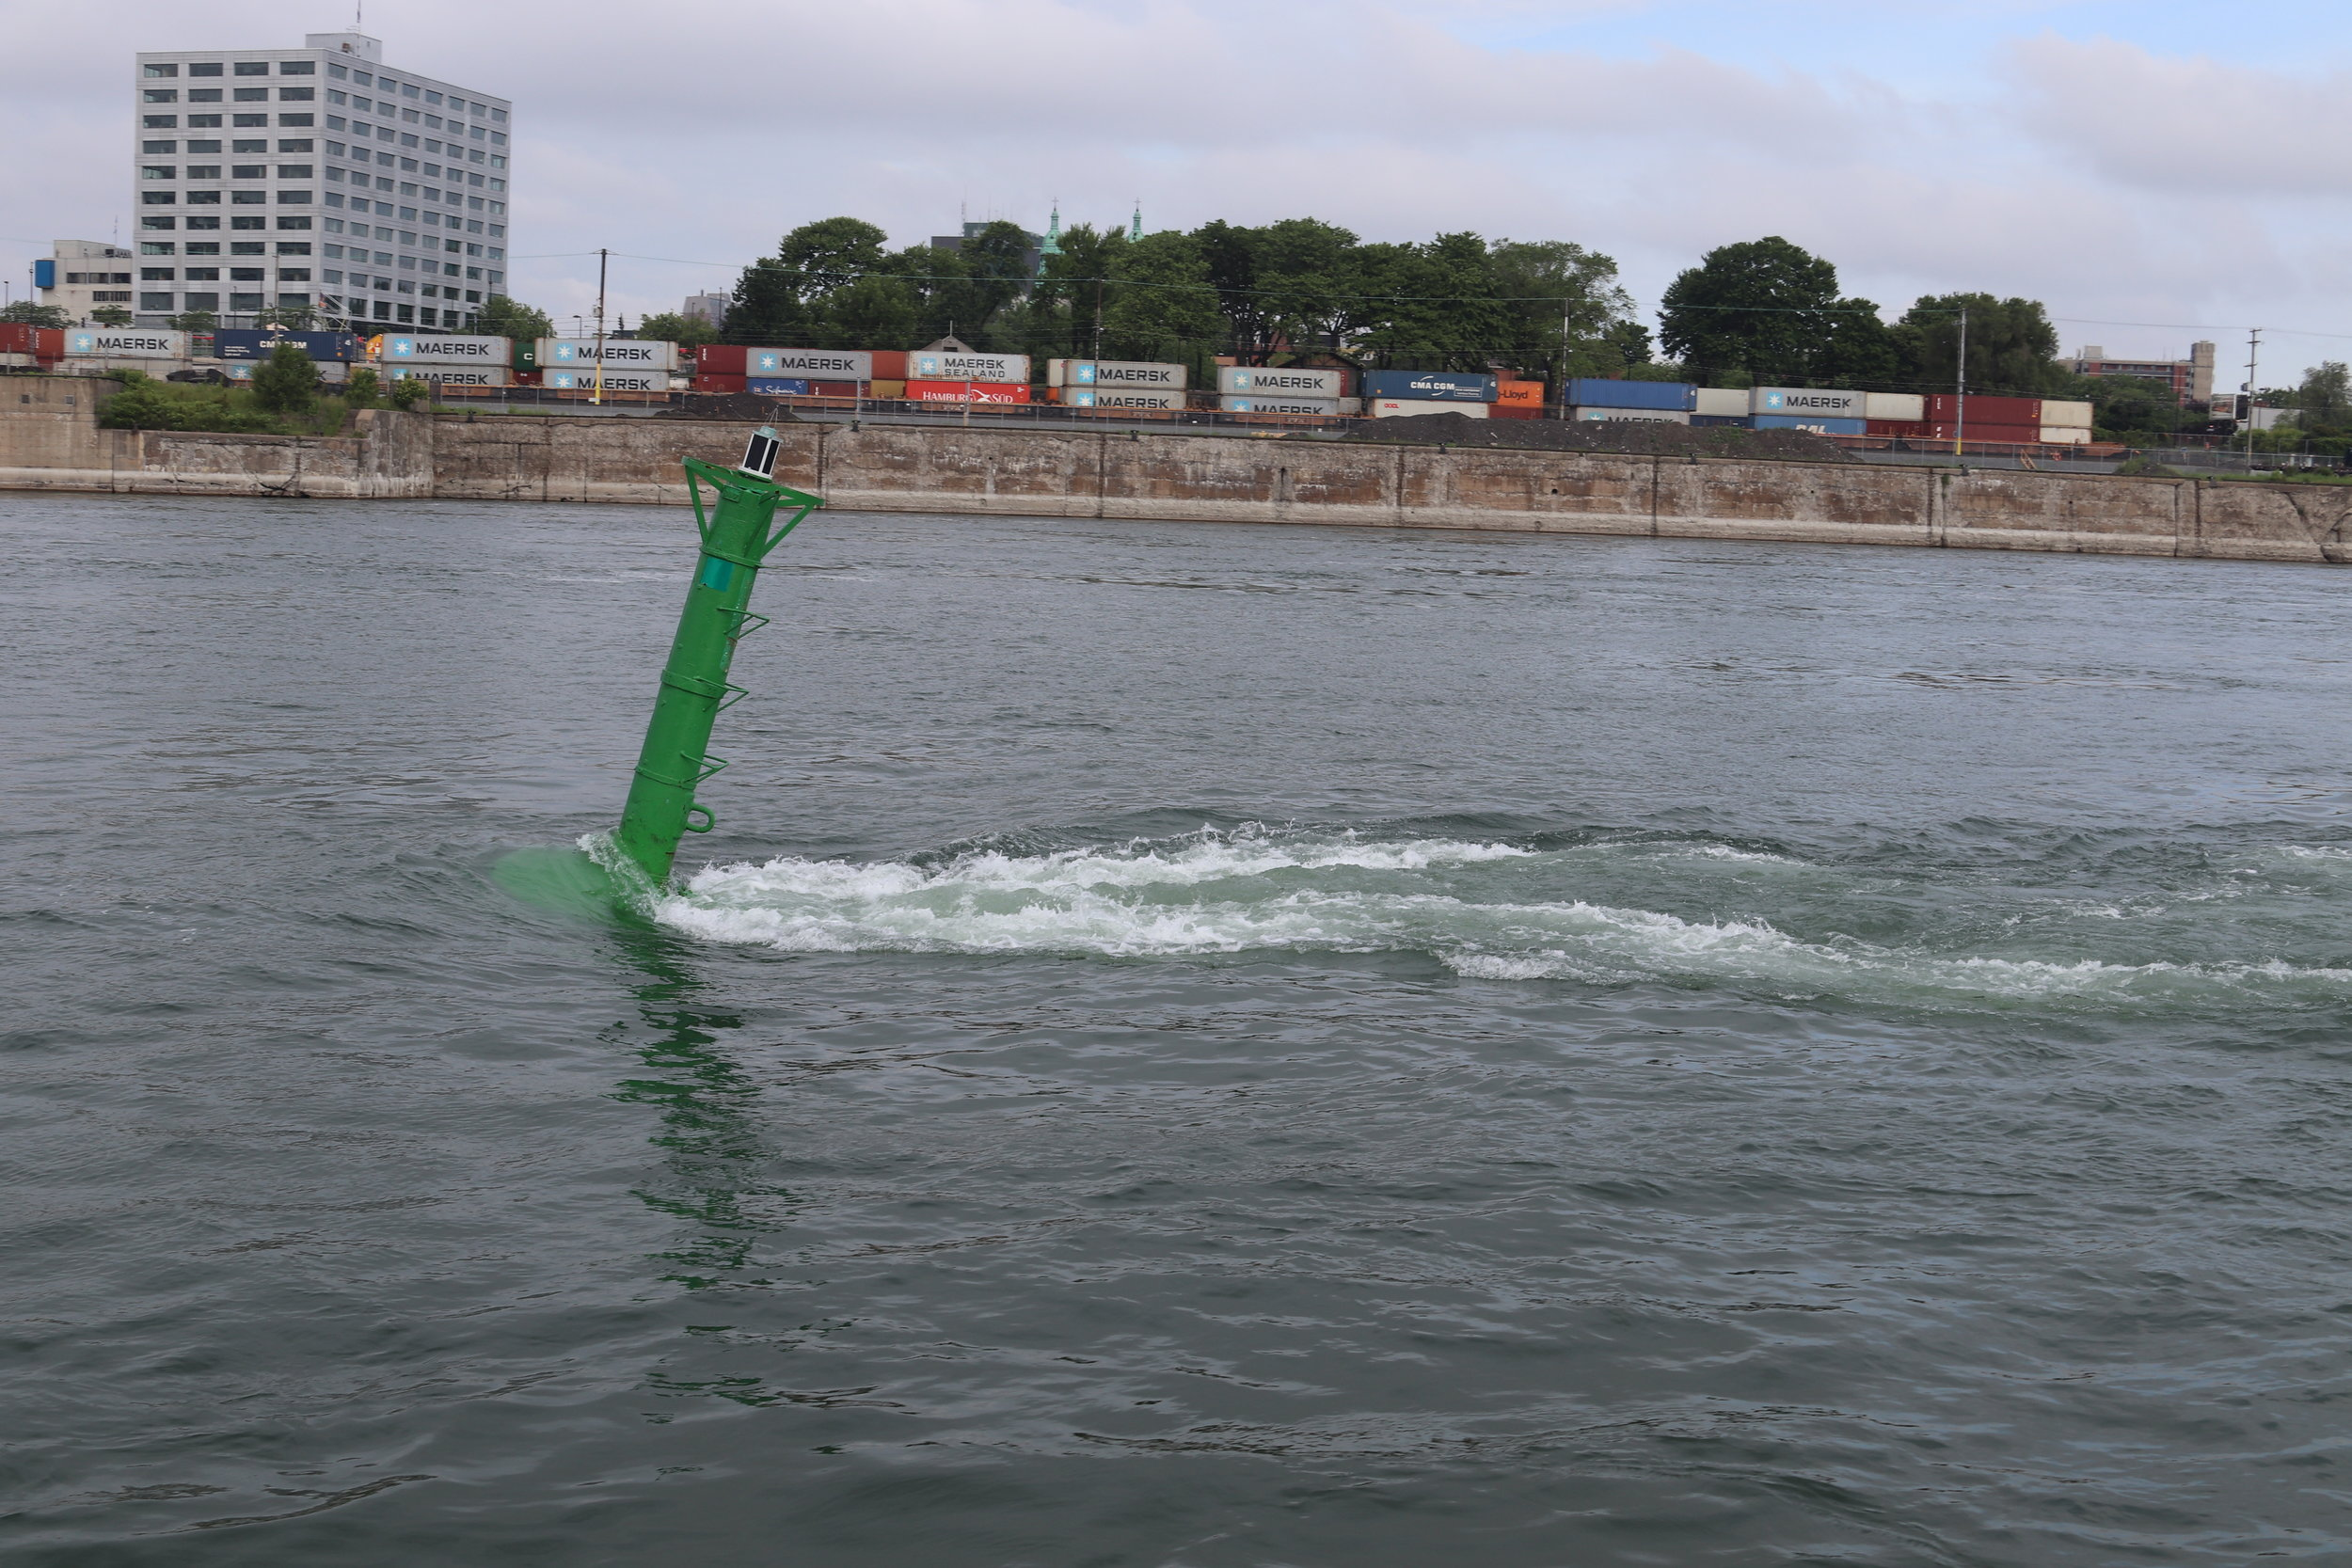 This is what a a buoy looks like in a 6 knot current